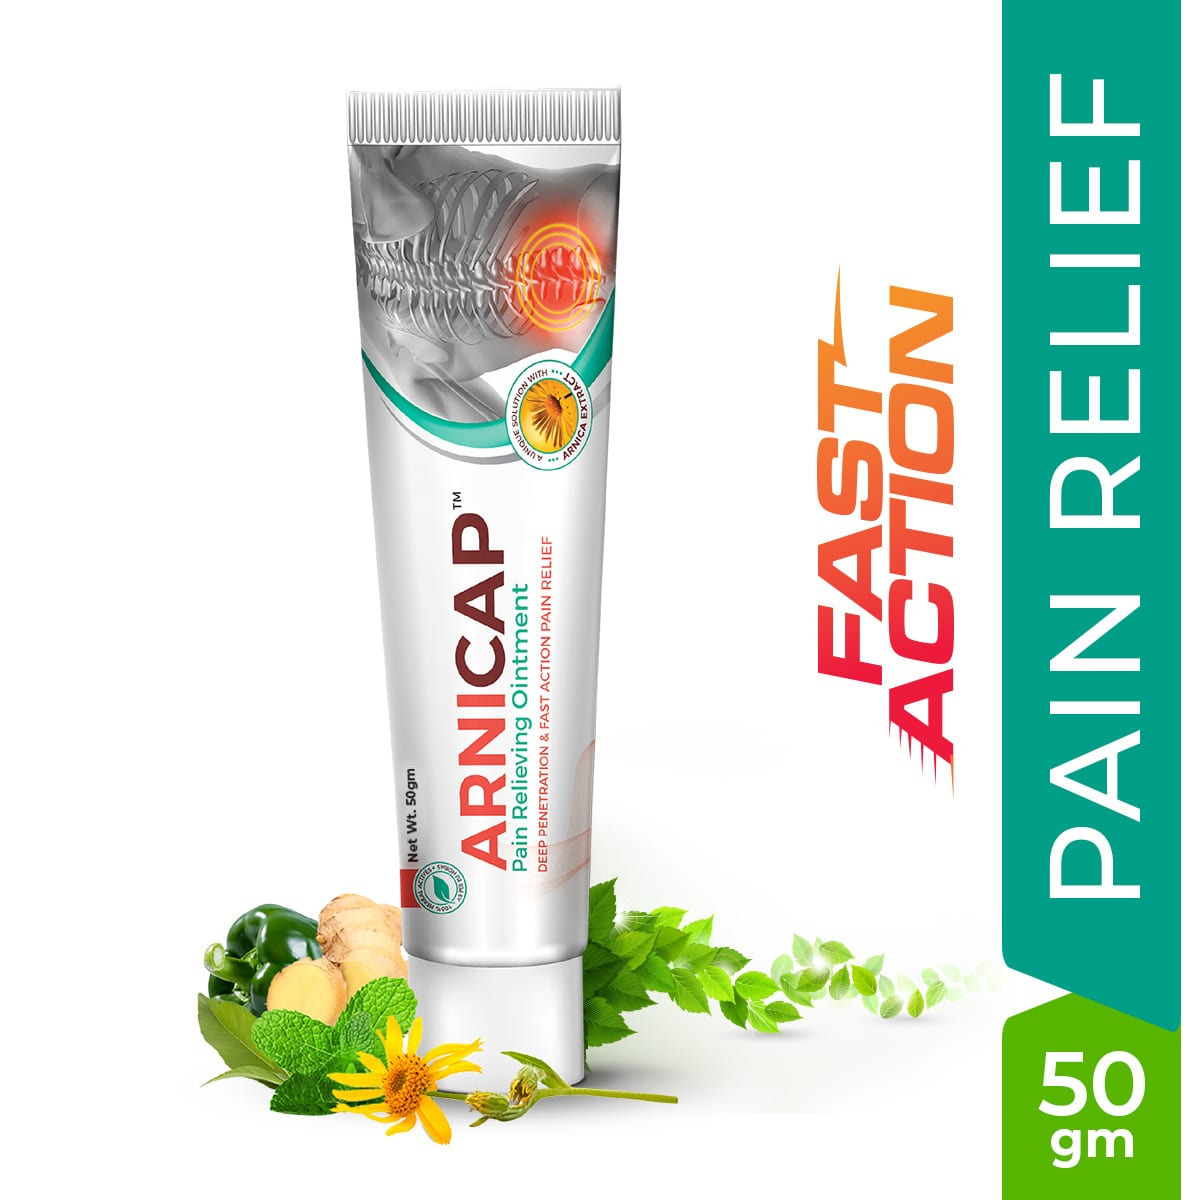 ArniCap – Best Herbal Pain Relieving Ointment